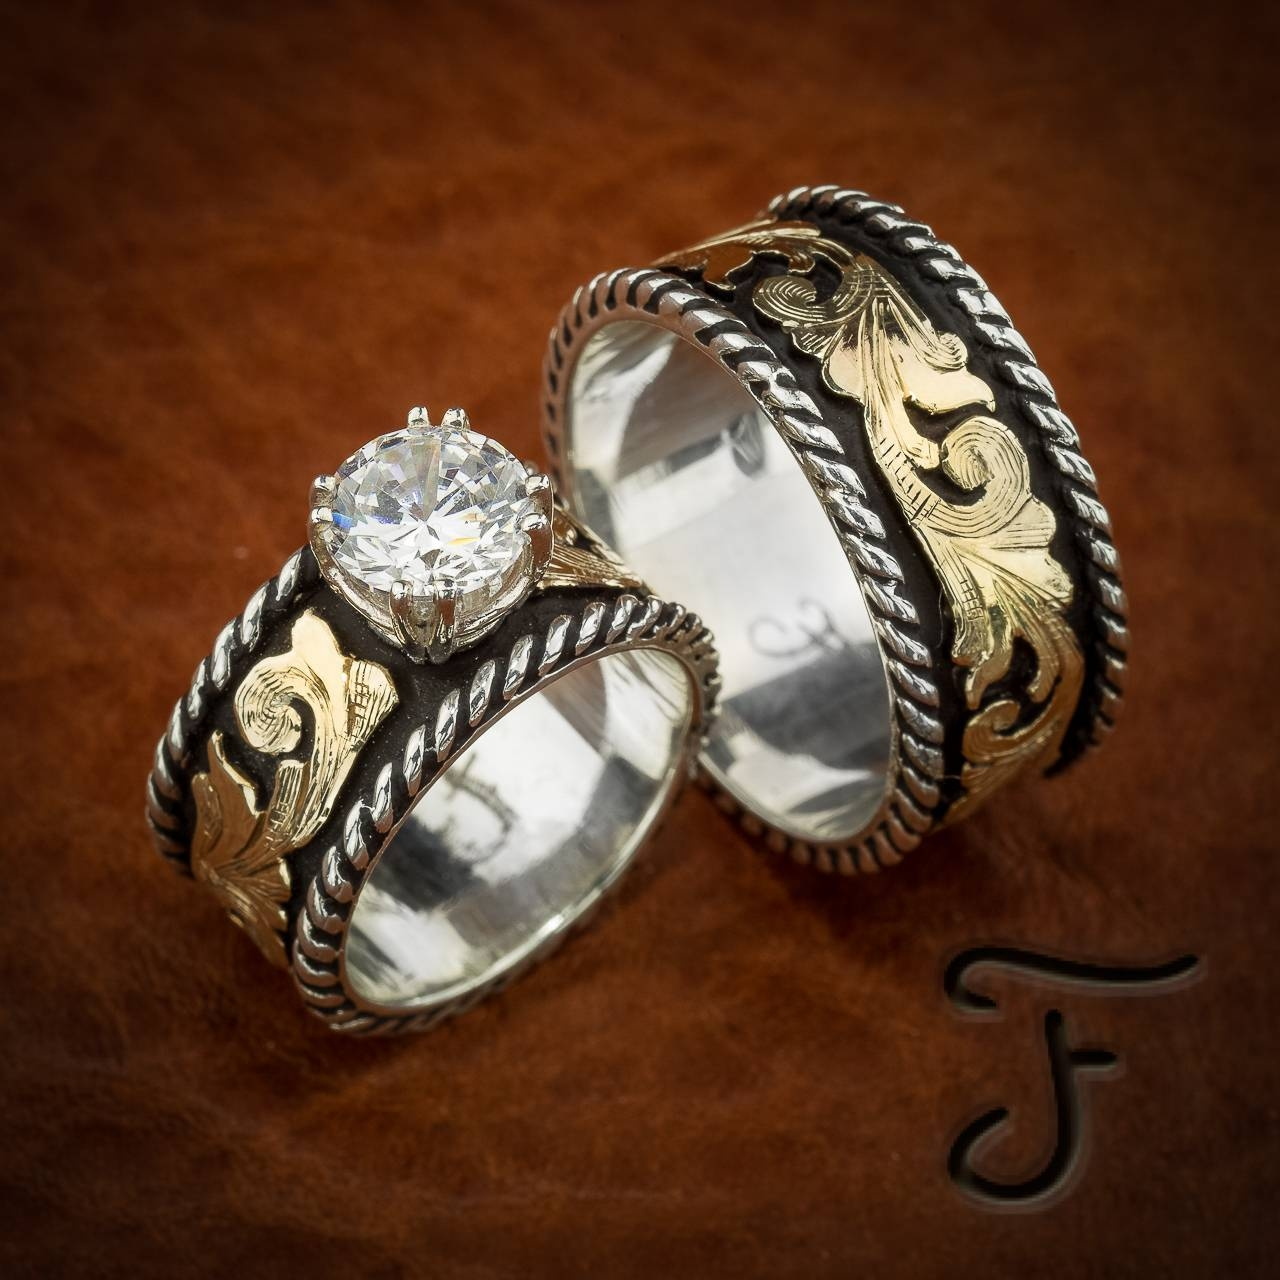 bands engagementring western ring jewelry and engagement wedding rings cowboy pin engraving